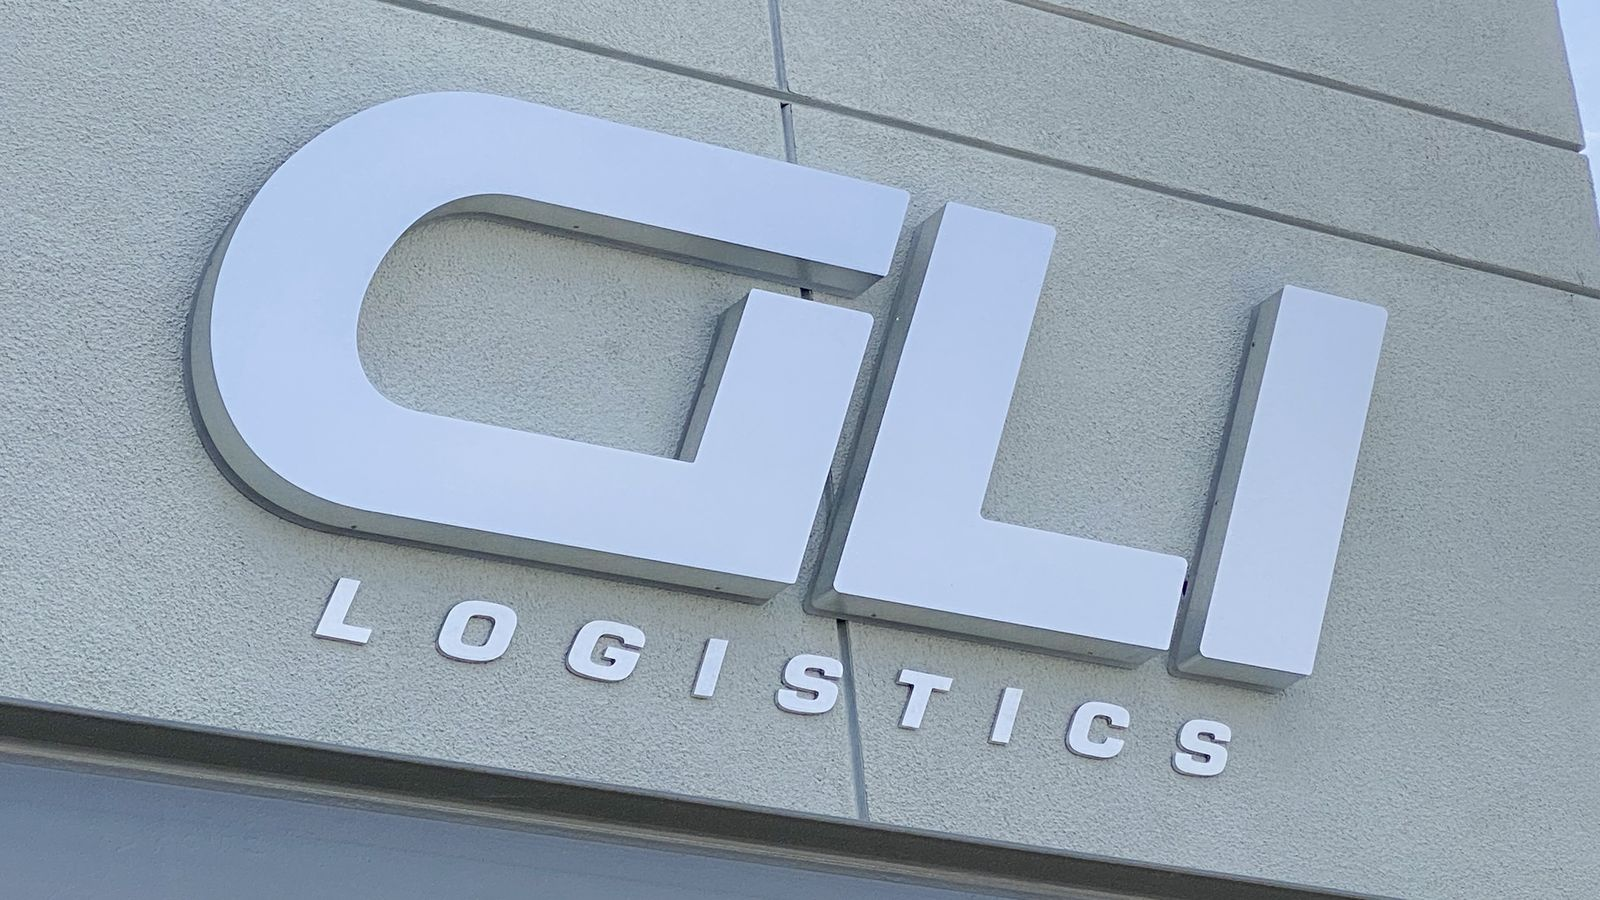 GLI Logistics light up sign